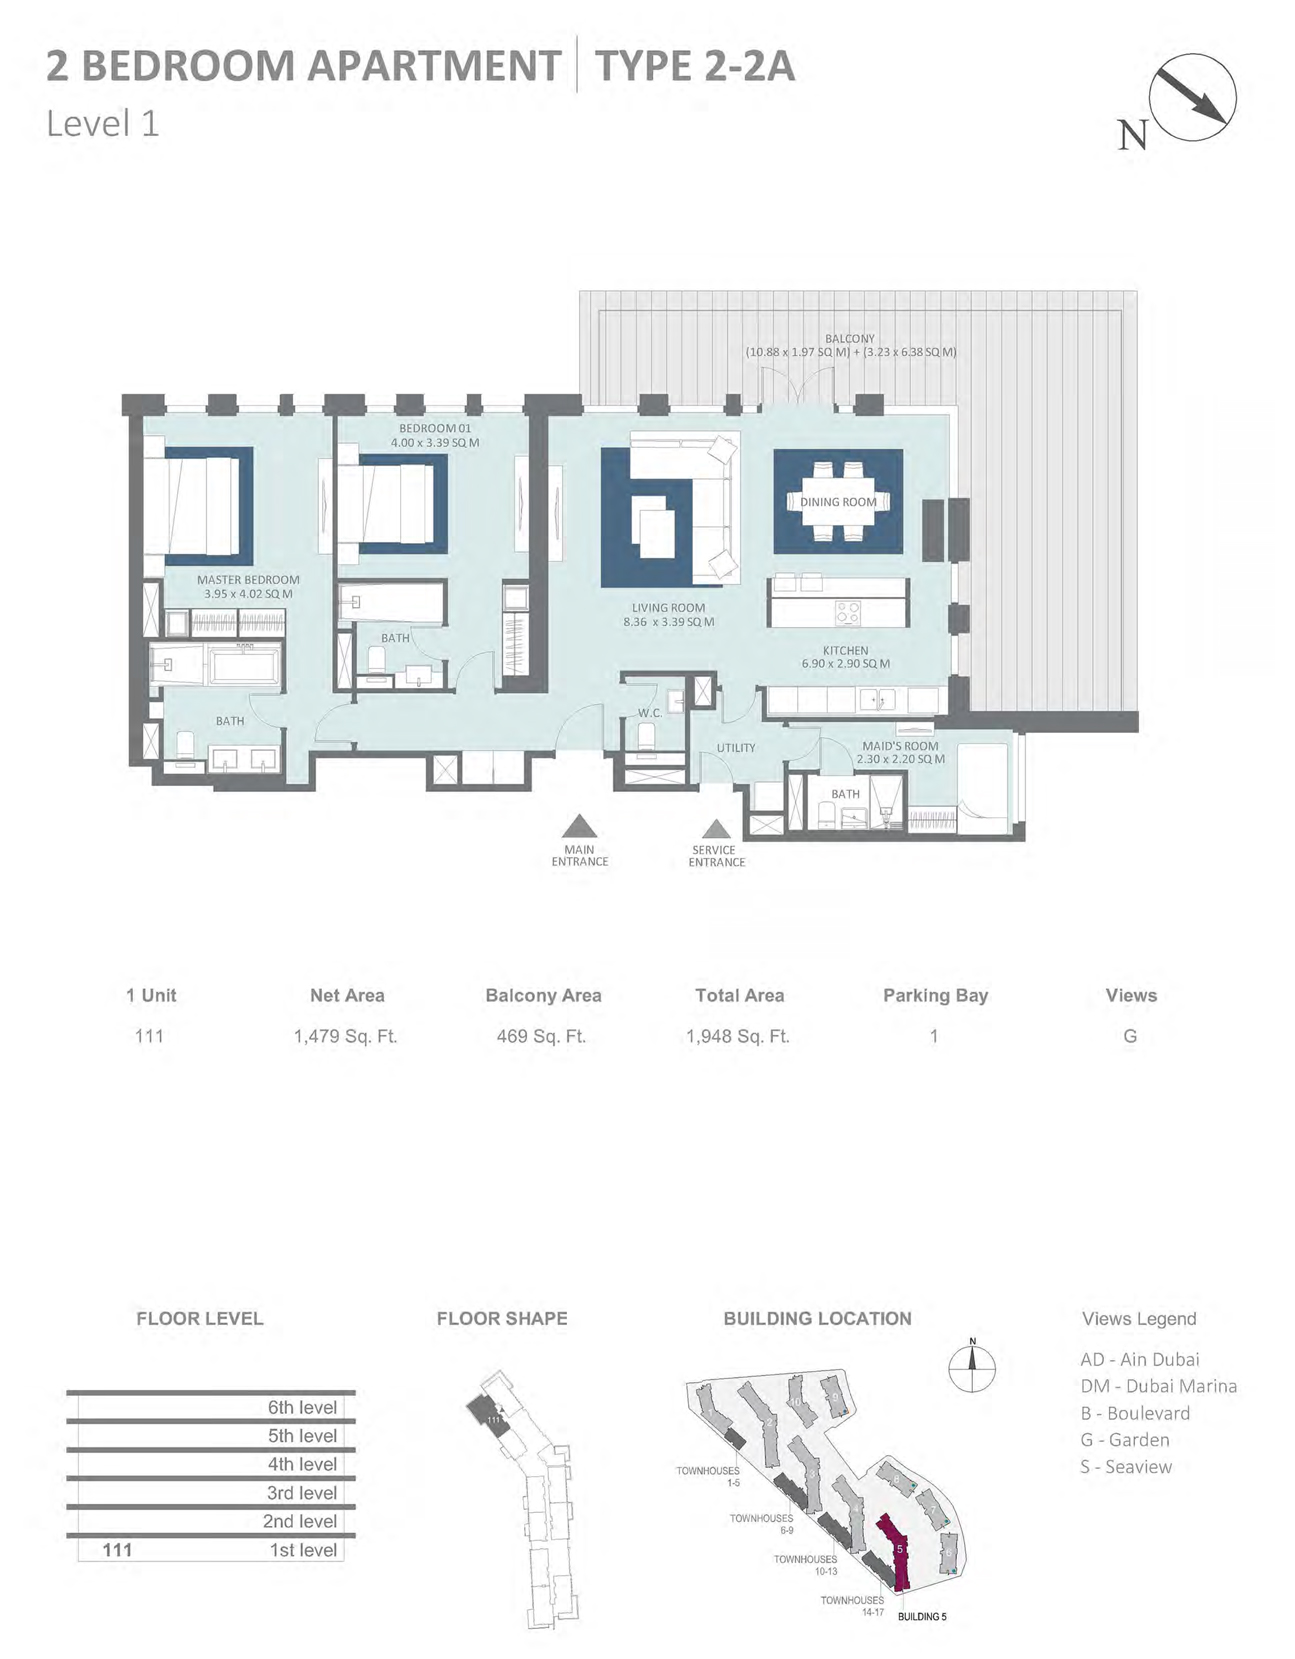 Building 5 - 2 Bedroom Type 2-2A Level 1 , Size 1479    sq. ft.